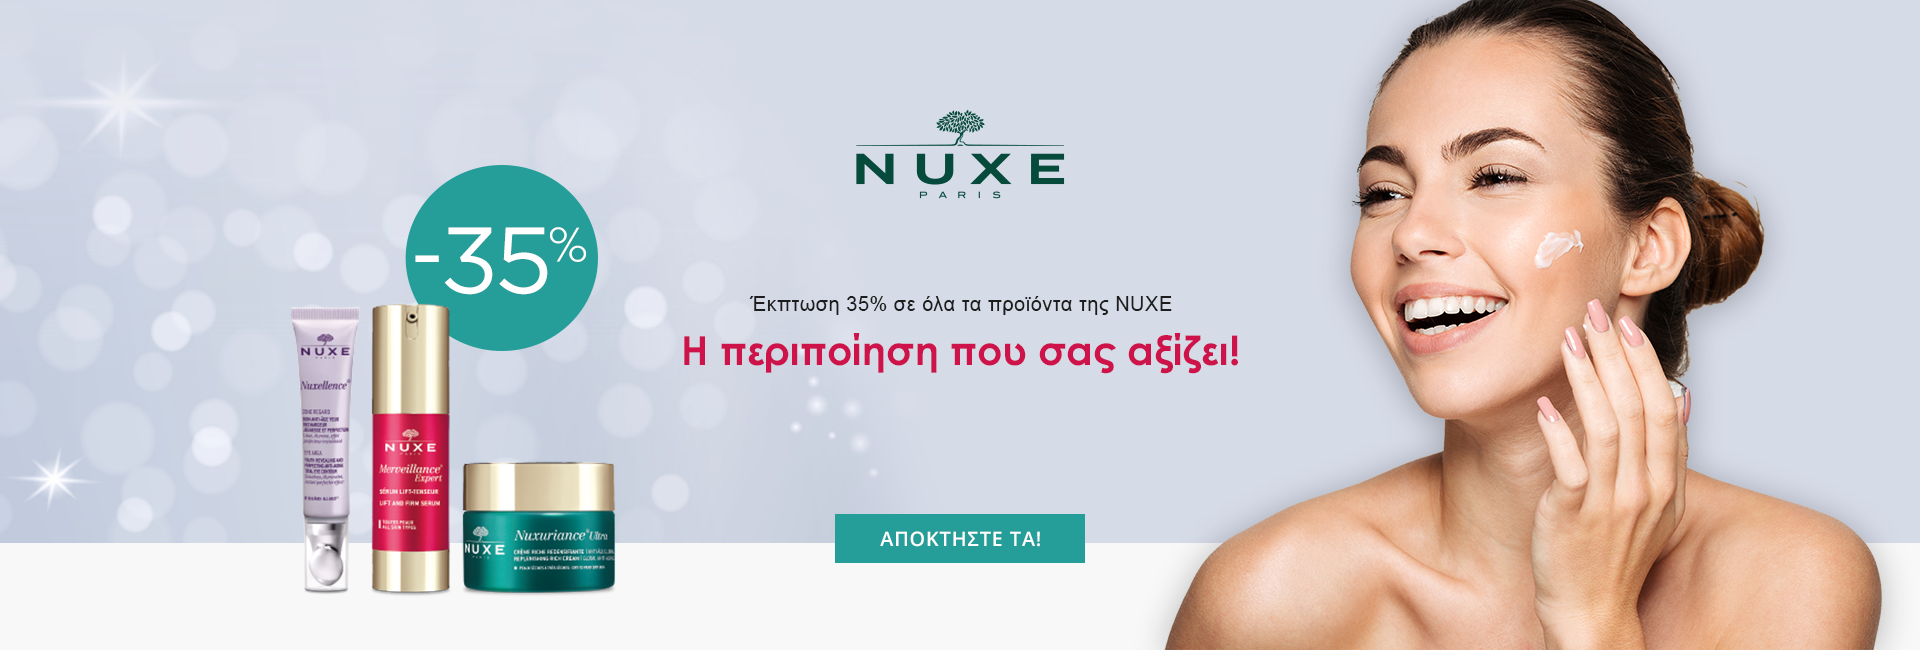 Nuxe 1920 x 650